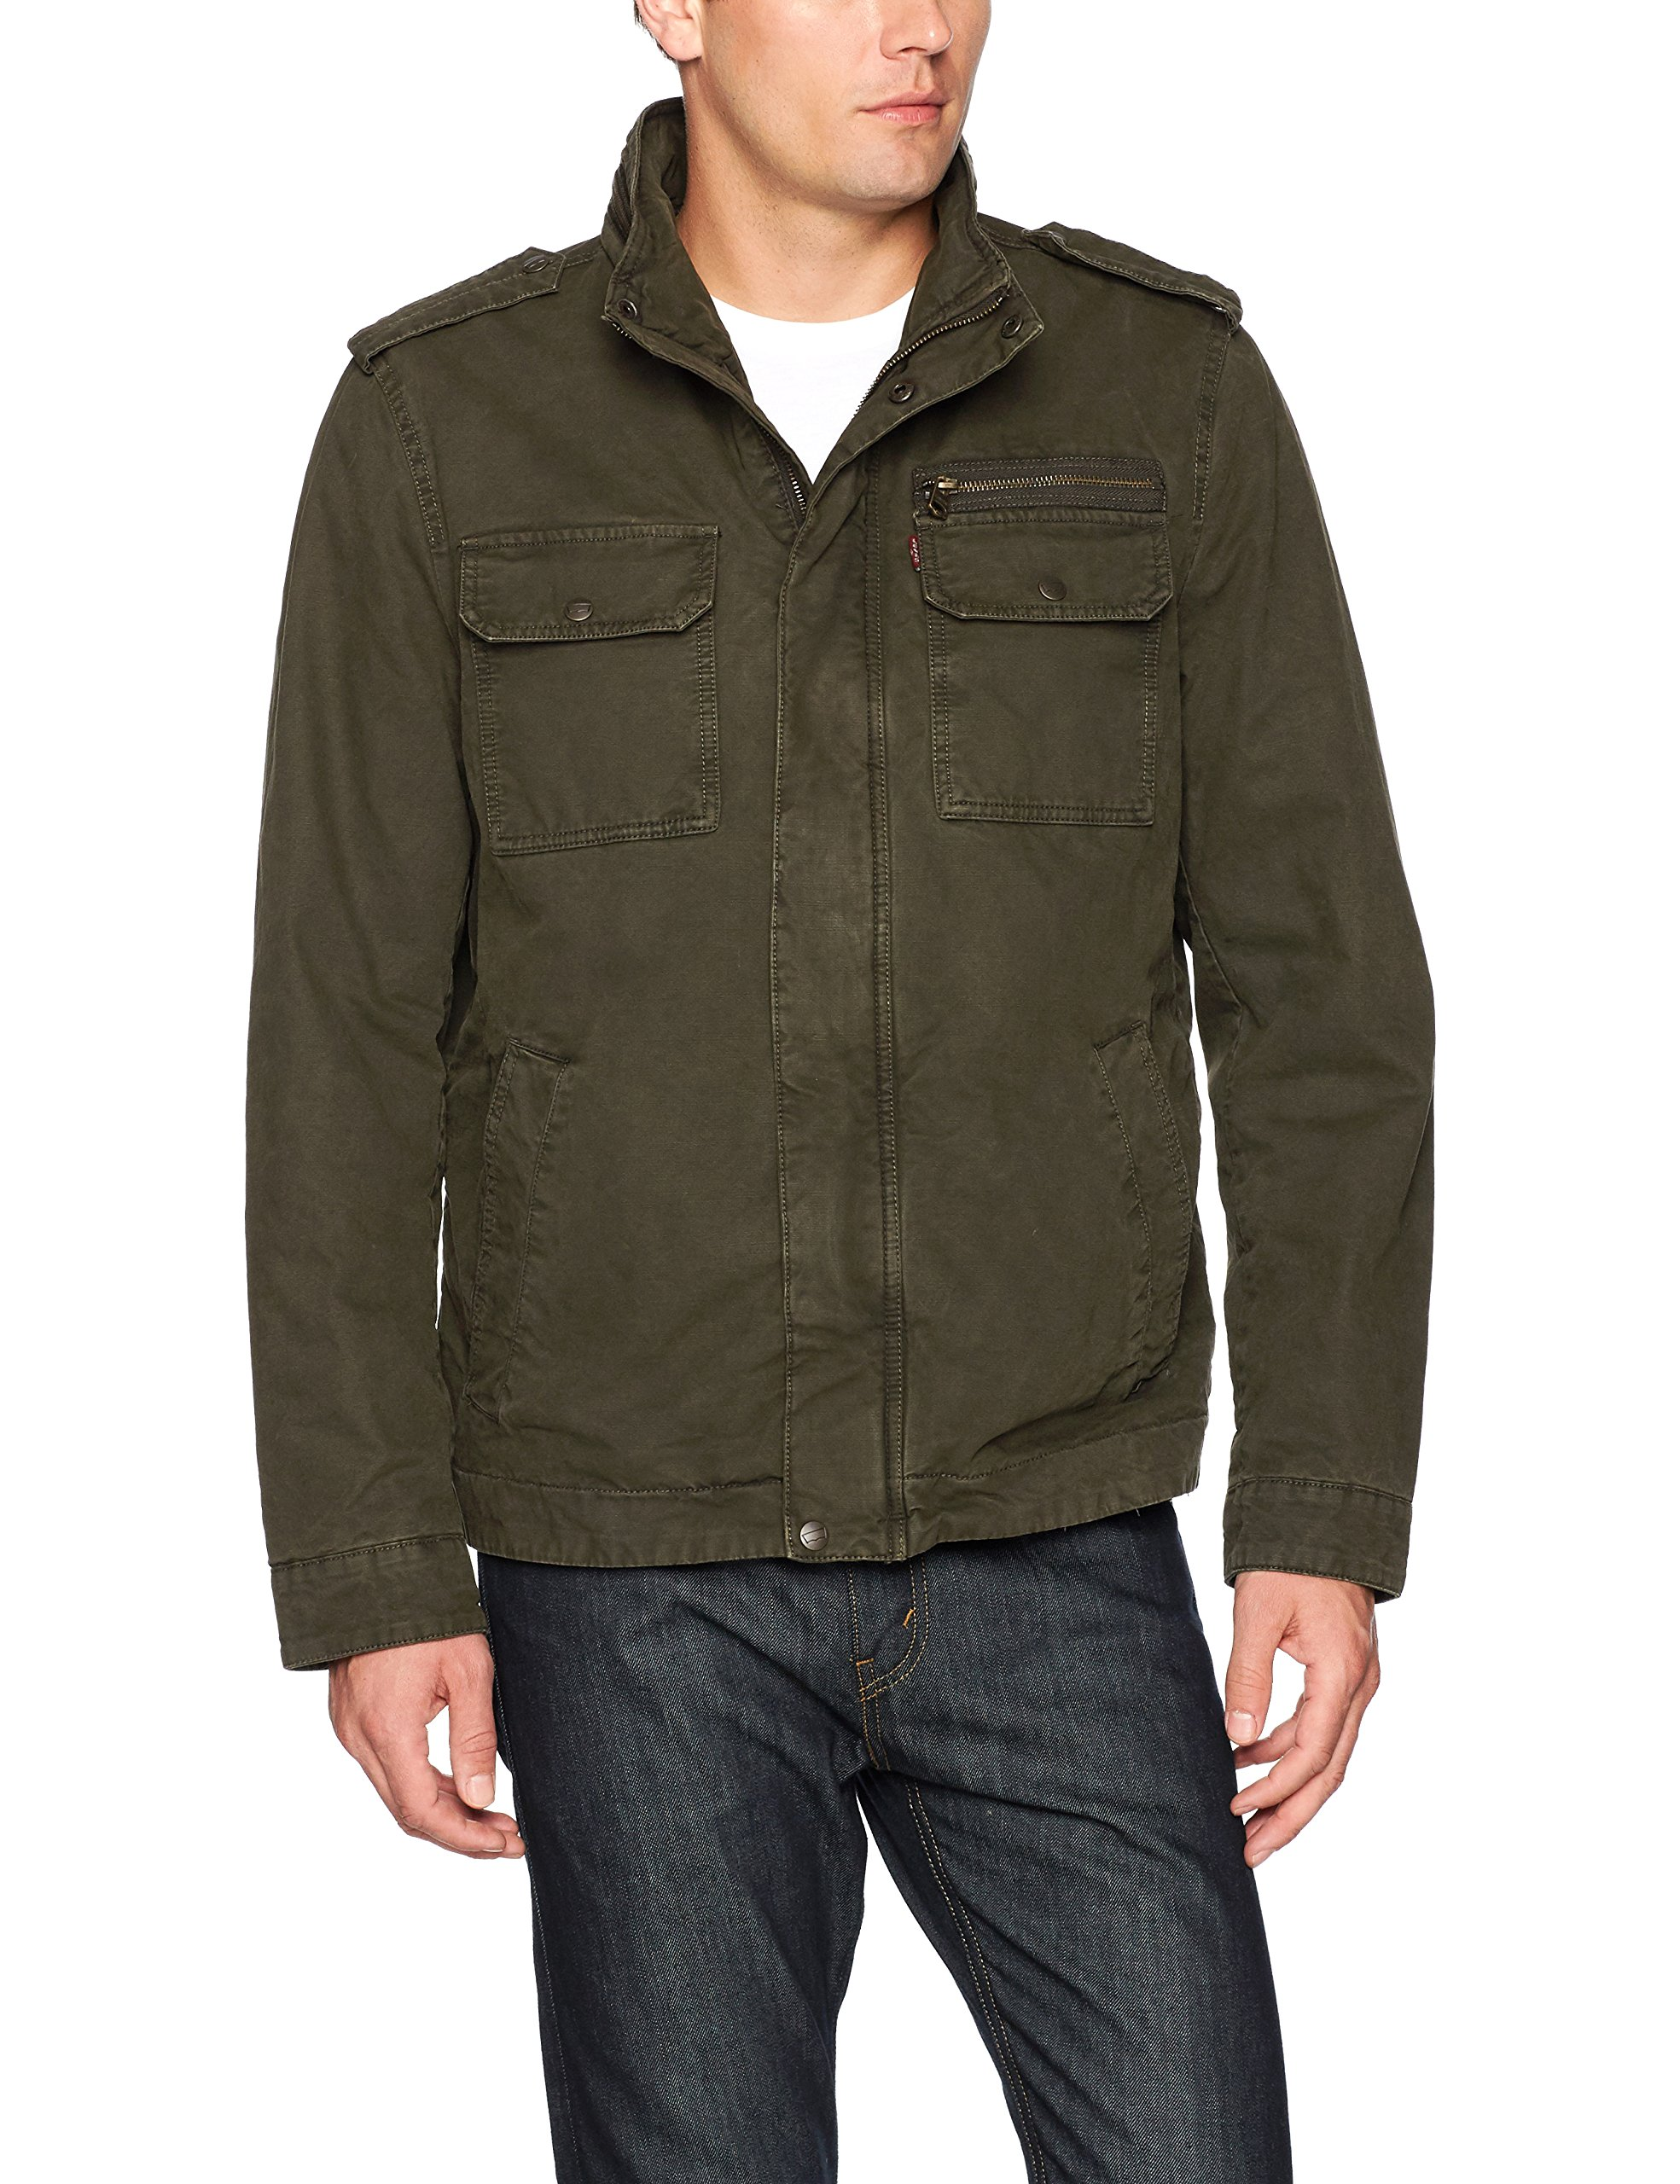 Levi's Men's Washed Cotton Two Pocket Sherpa Lined Military Jacket, Olive, Large by Levi's